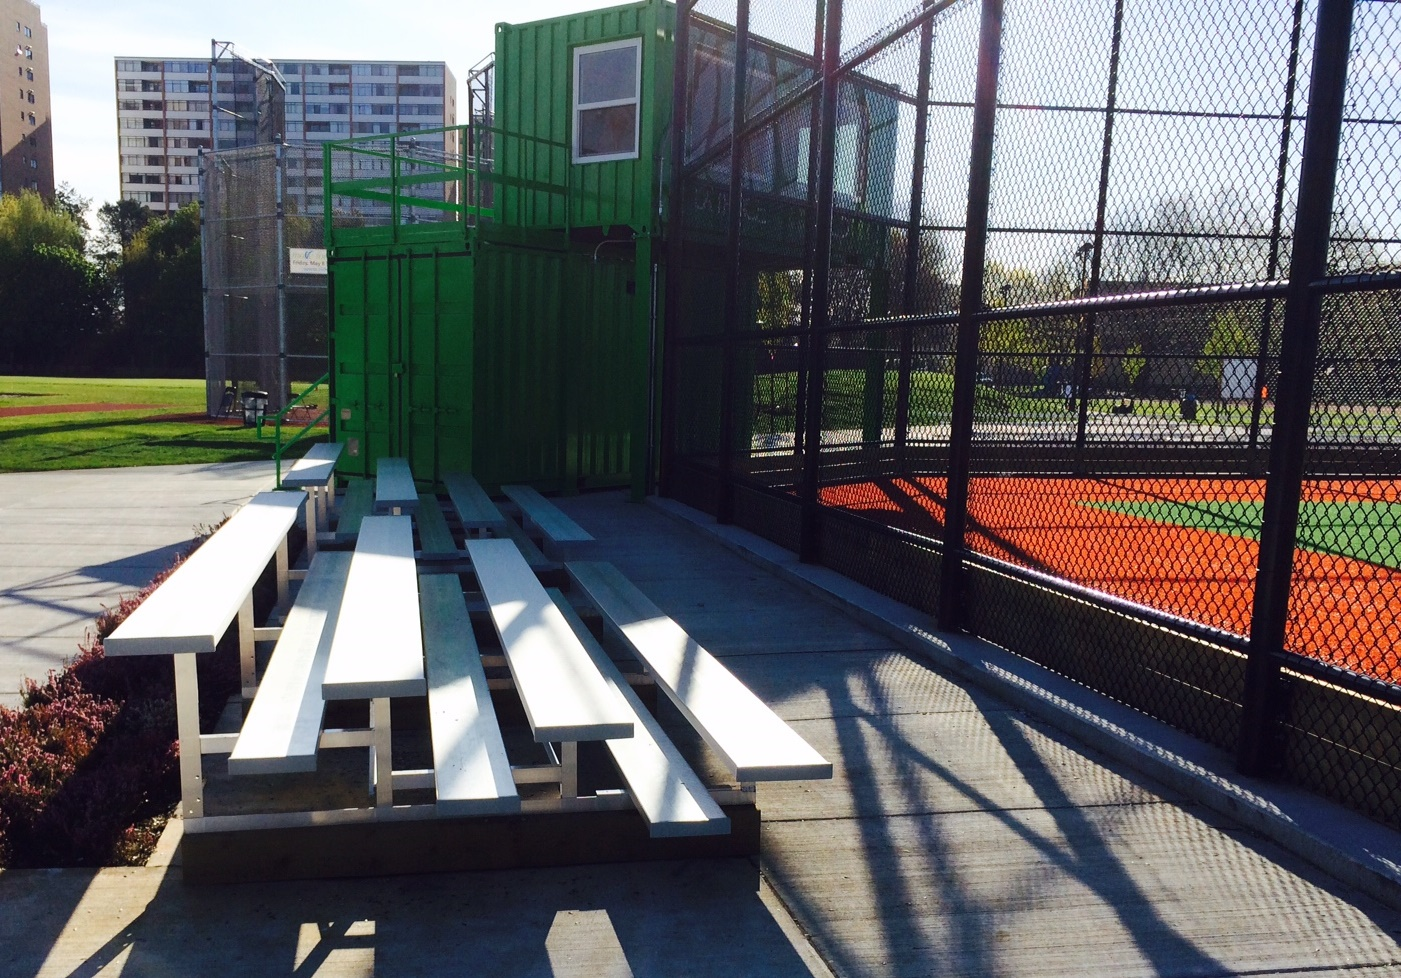 New bleachers and concrete pathways at Minoru3/Latrace Field